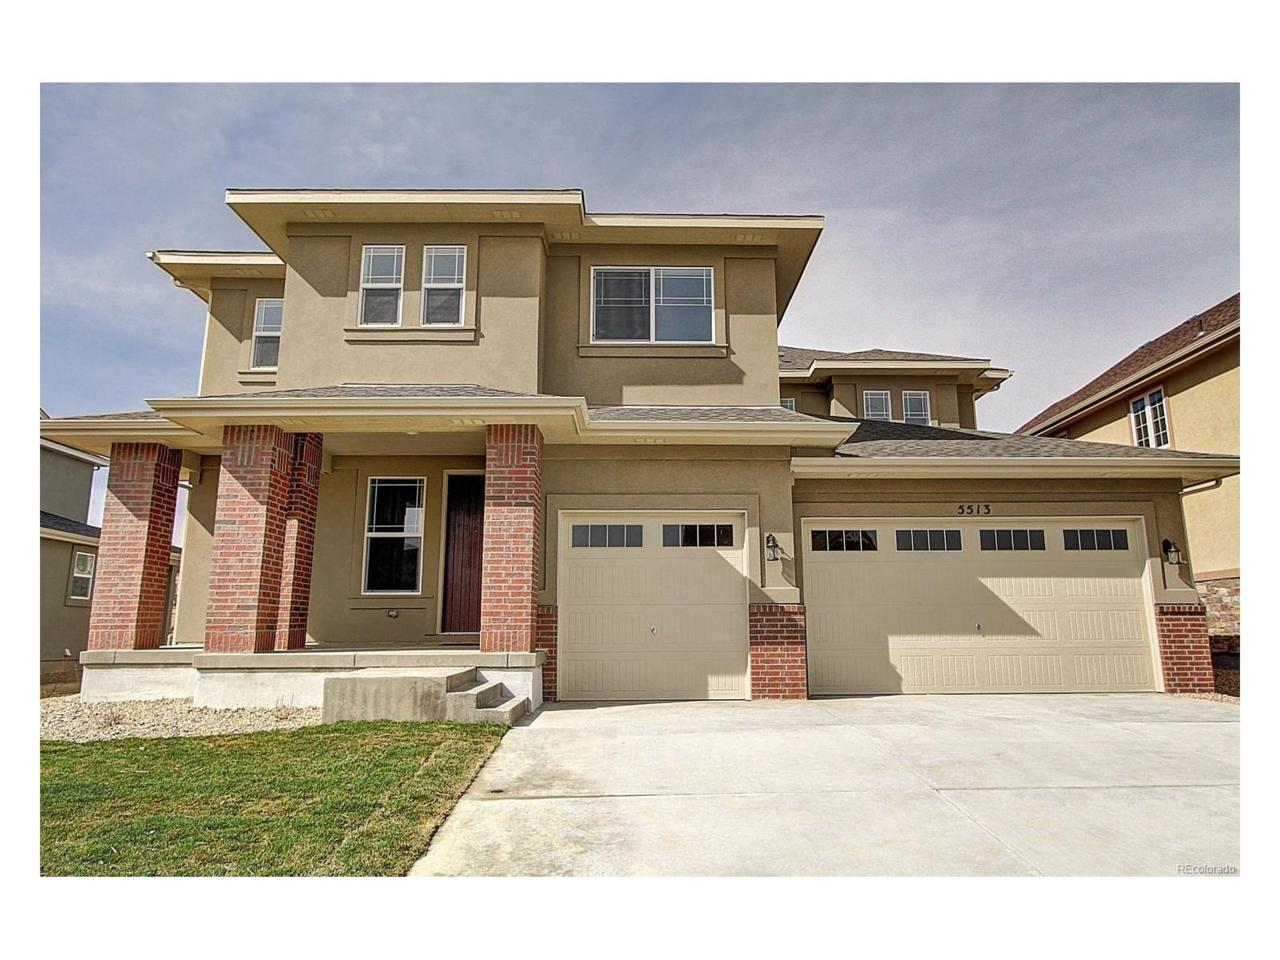 8481 Rogers Court, Arvada, CO 80007 (MLS #1753242) :: 8z Real Estate